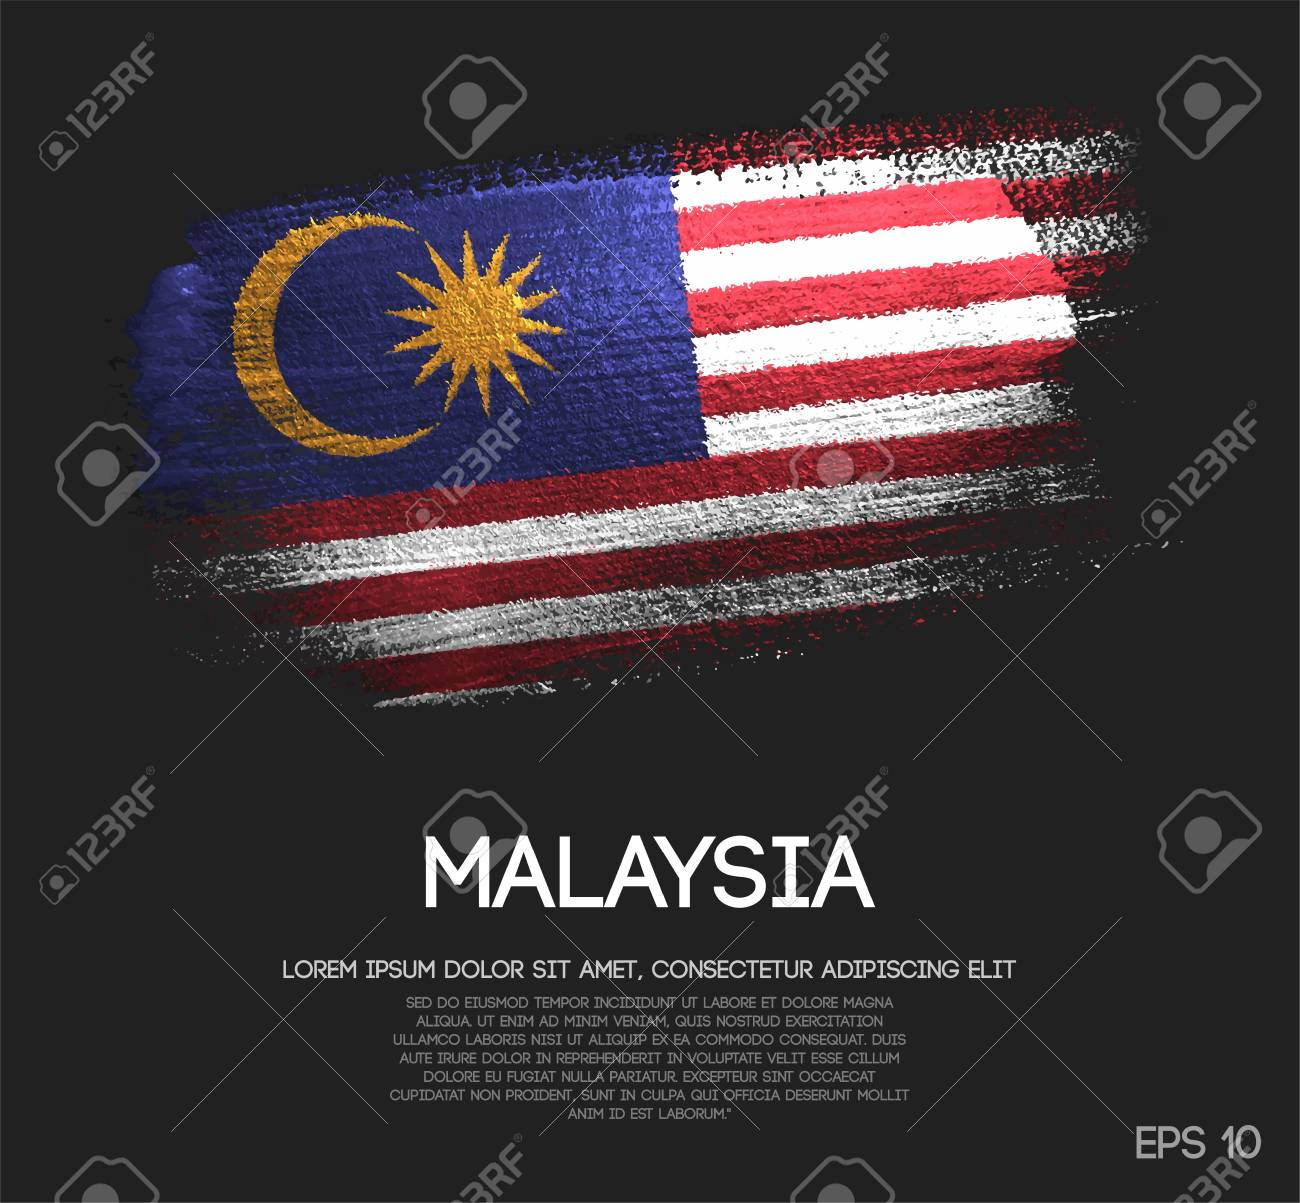 Malaysia Flag Made of Glitter Sparkle Brush Paint Vector - 105595656